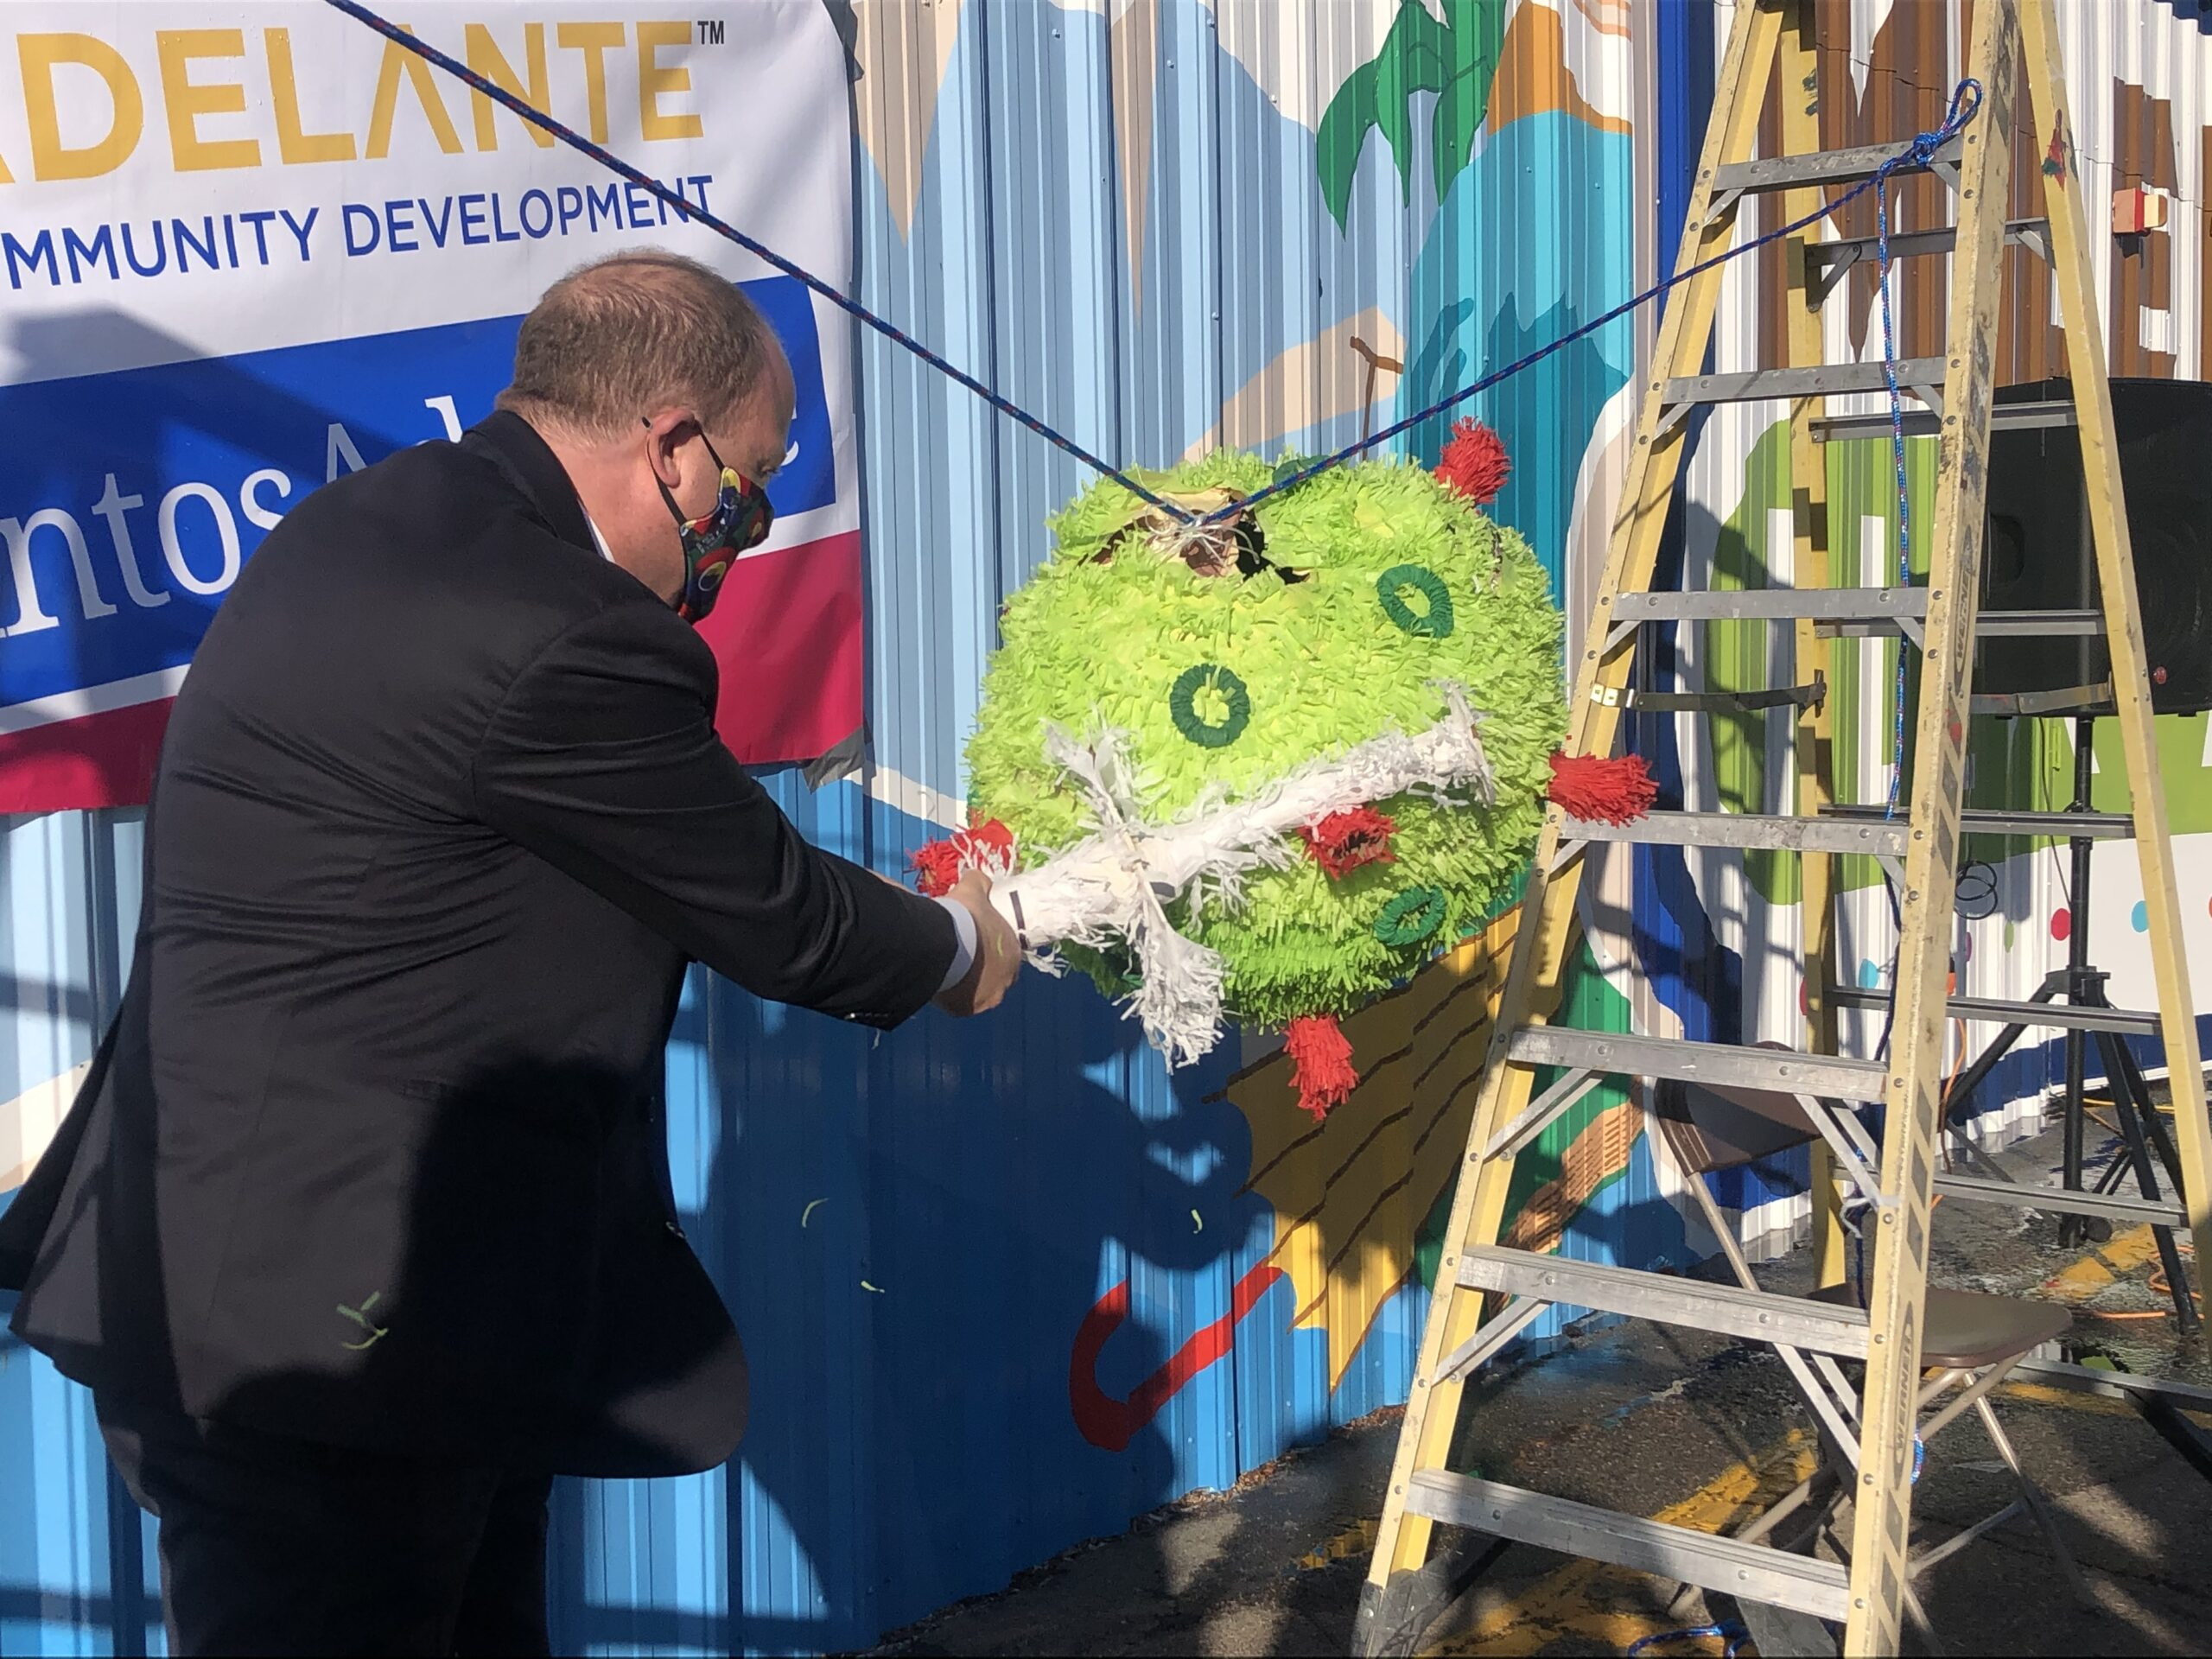 Gov. Jared Polis takes a swing at a pinata representing the COVID-19 virus, during a visit to the Adelante Community Development Clinic at Mile High Flea Market in Henderson, February 26, 2021.